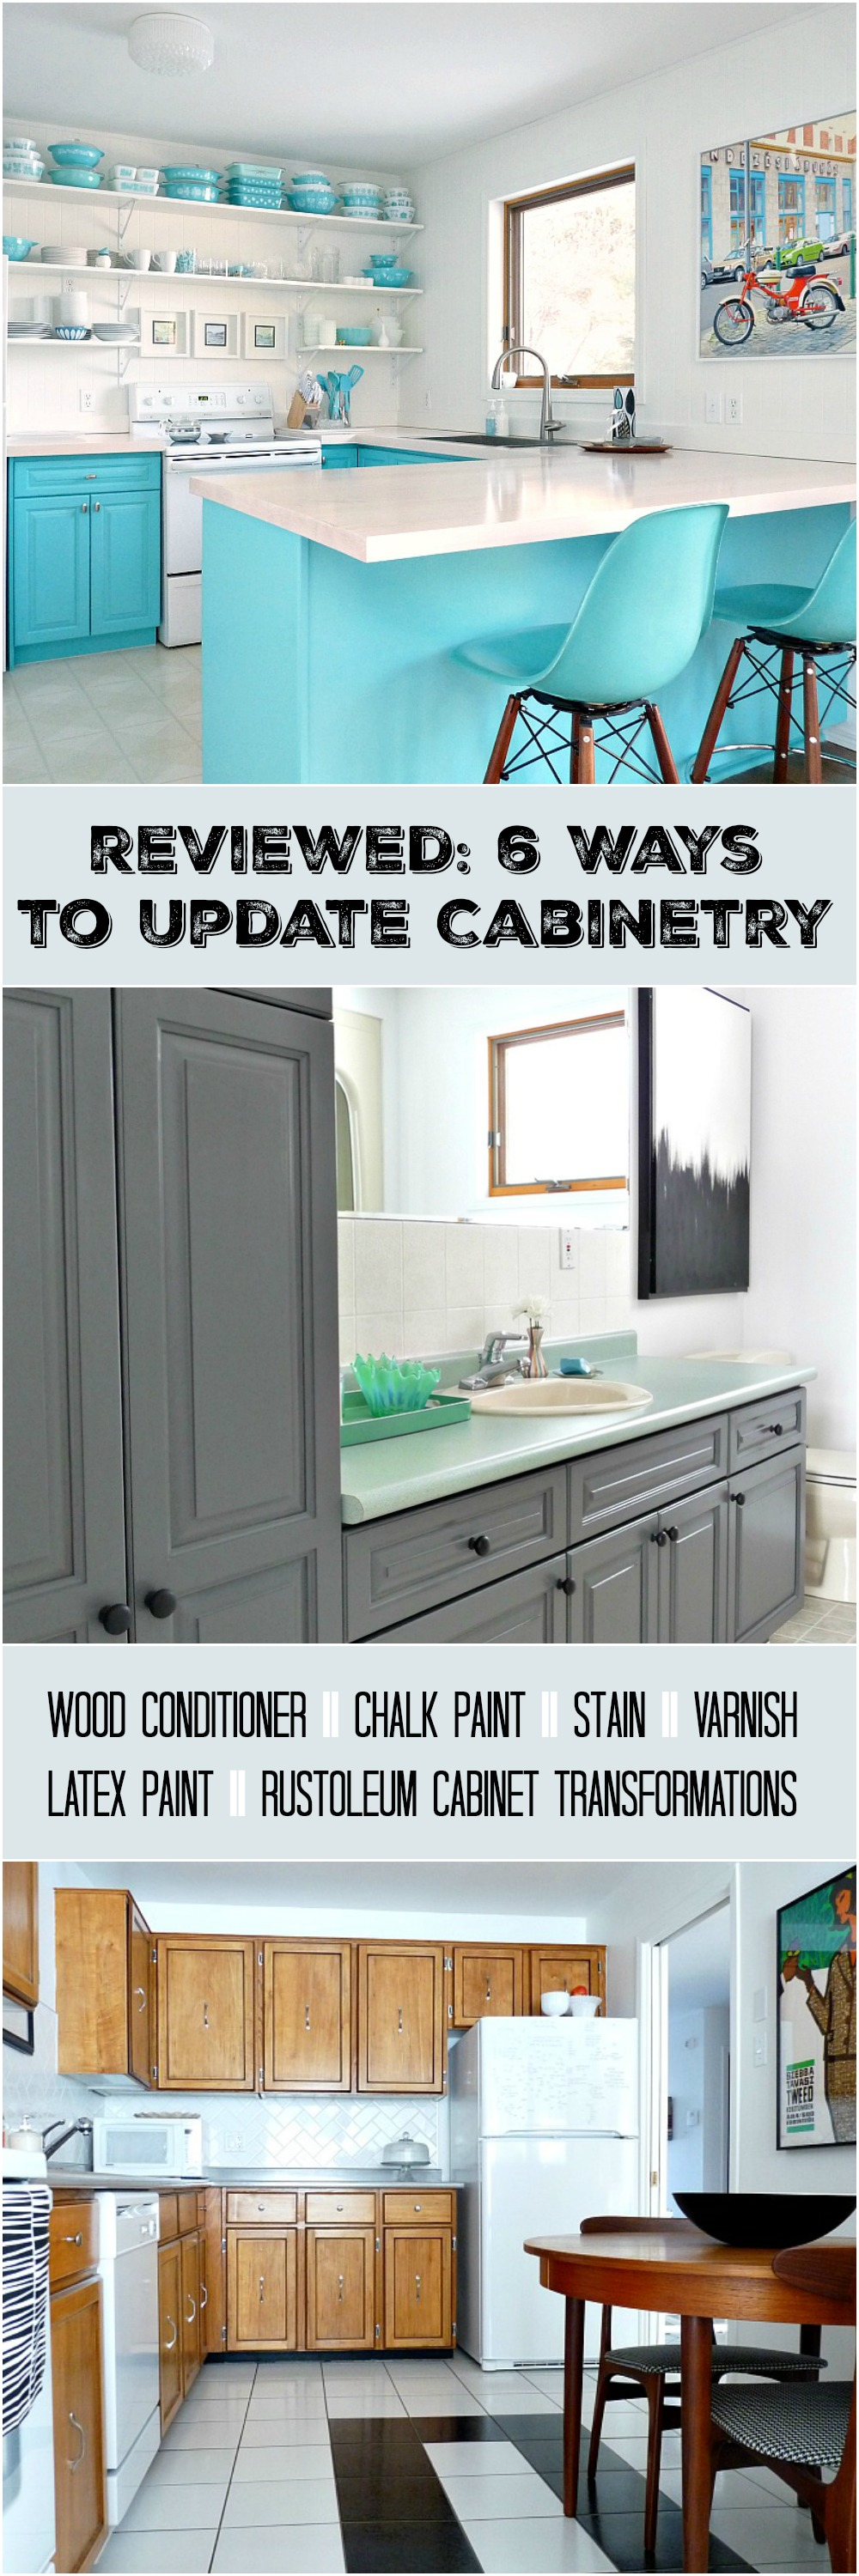 Cabinet Refinishing 101: Latex Paint vs. Stain vs. Rust-Oleum Cabinet Transformations vs. Varnish vs. Chalk Paint vs. Wood Conditioner